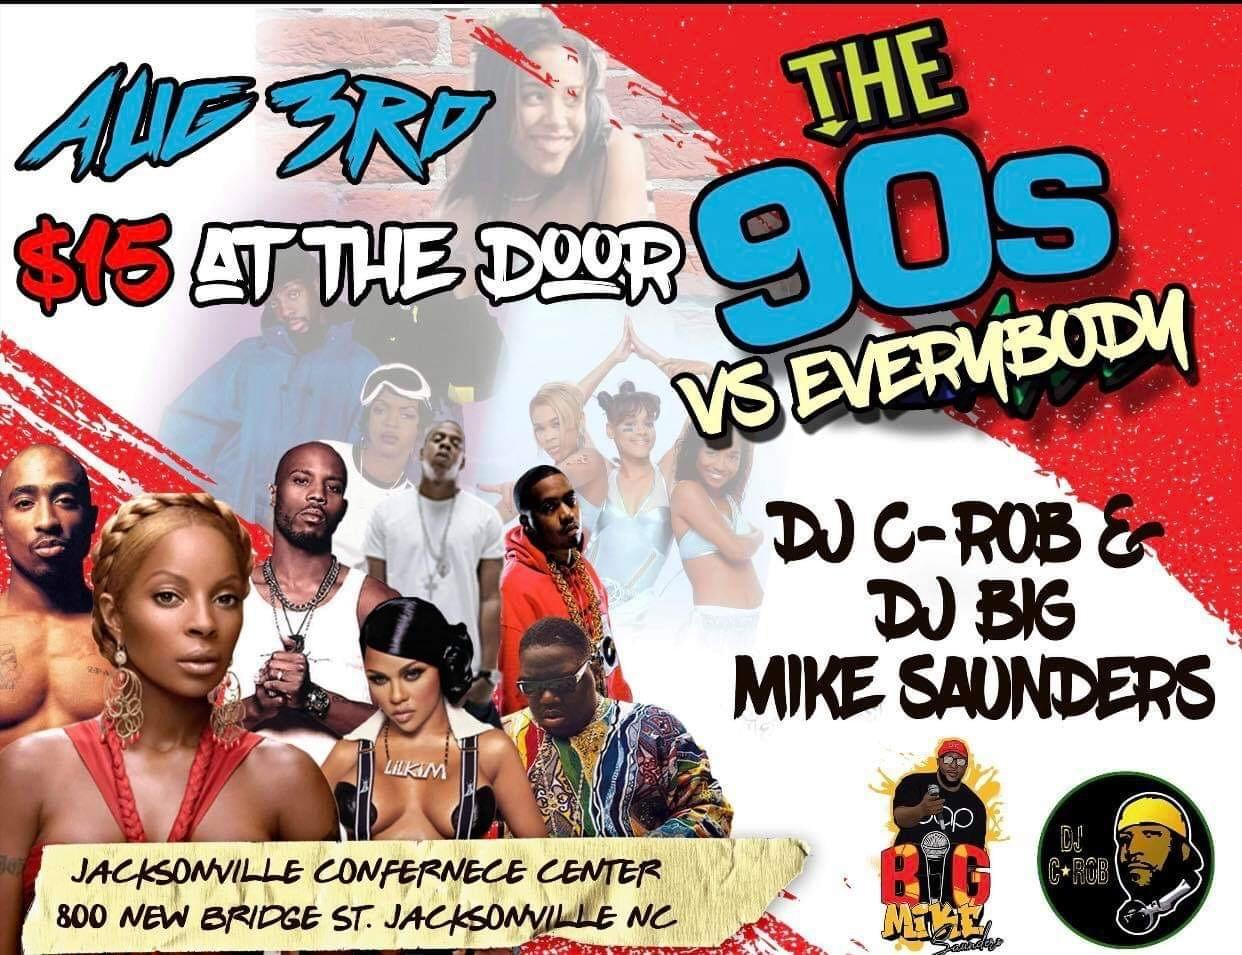 The 90s vs Everybody  Day Party